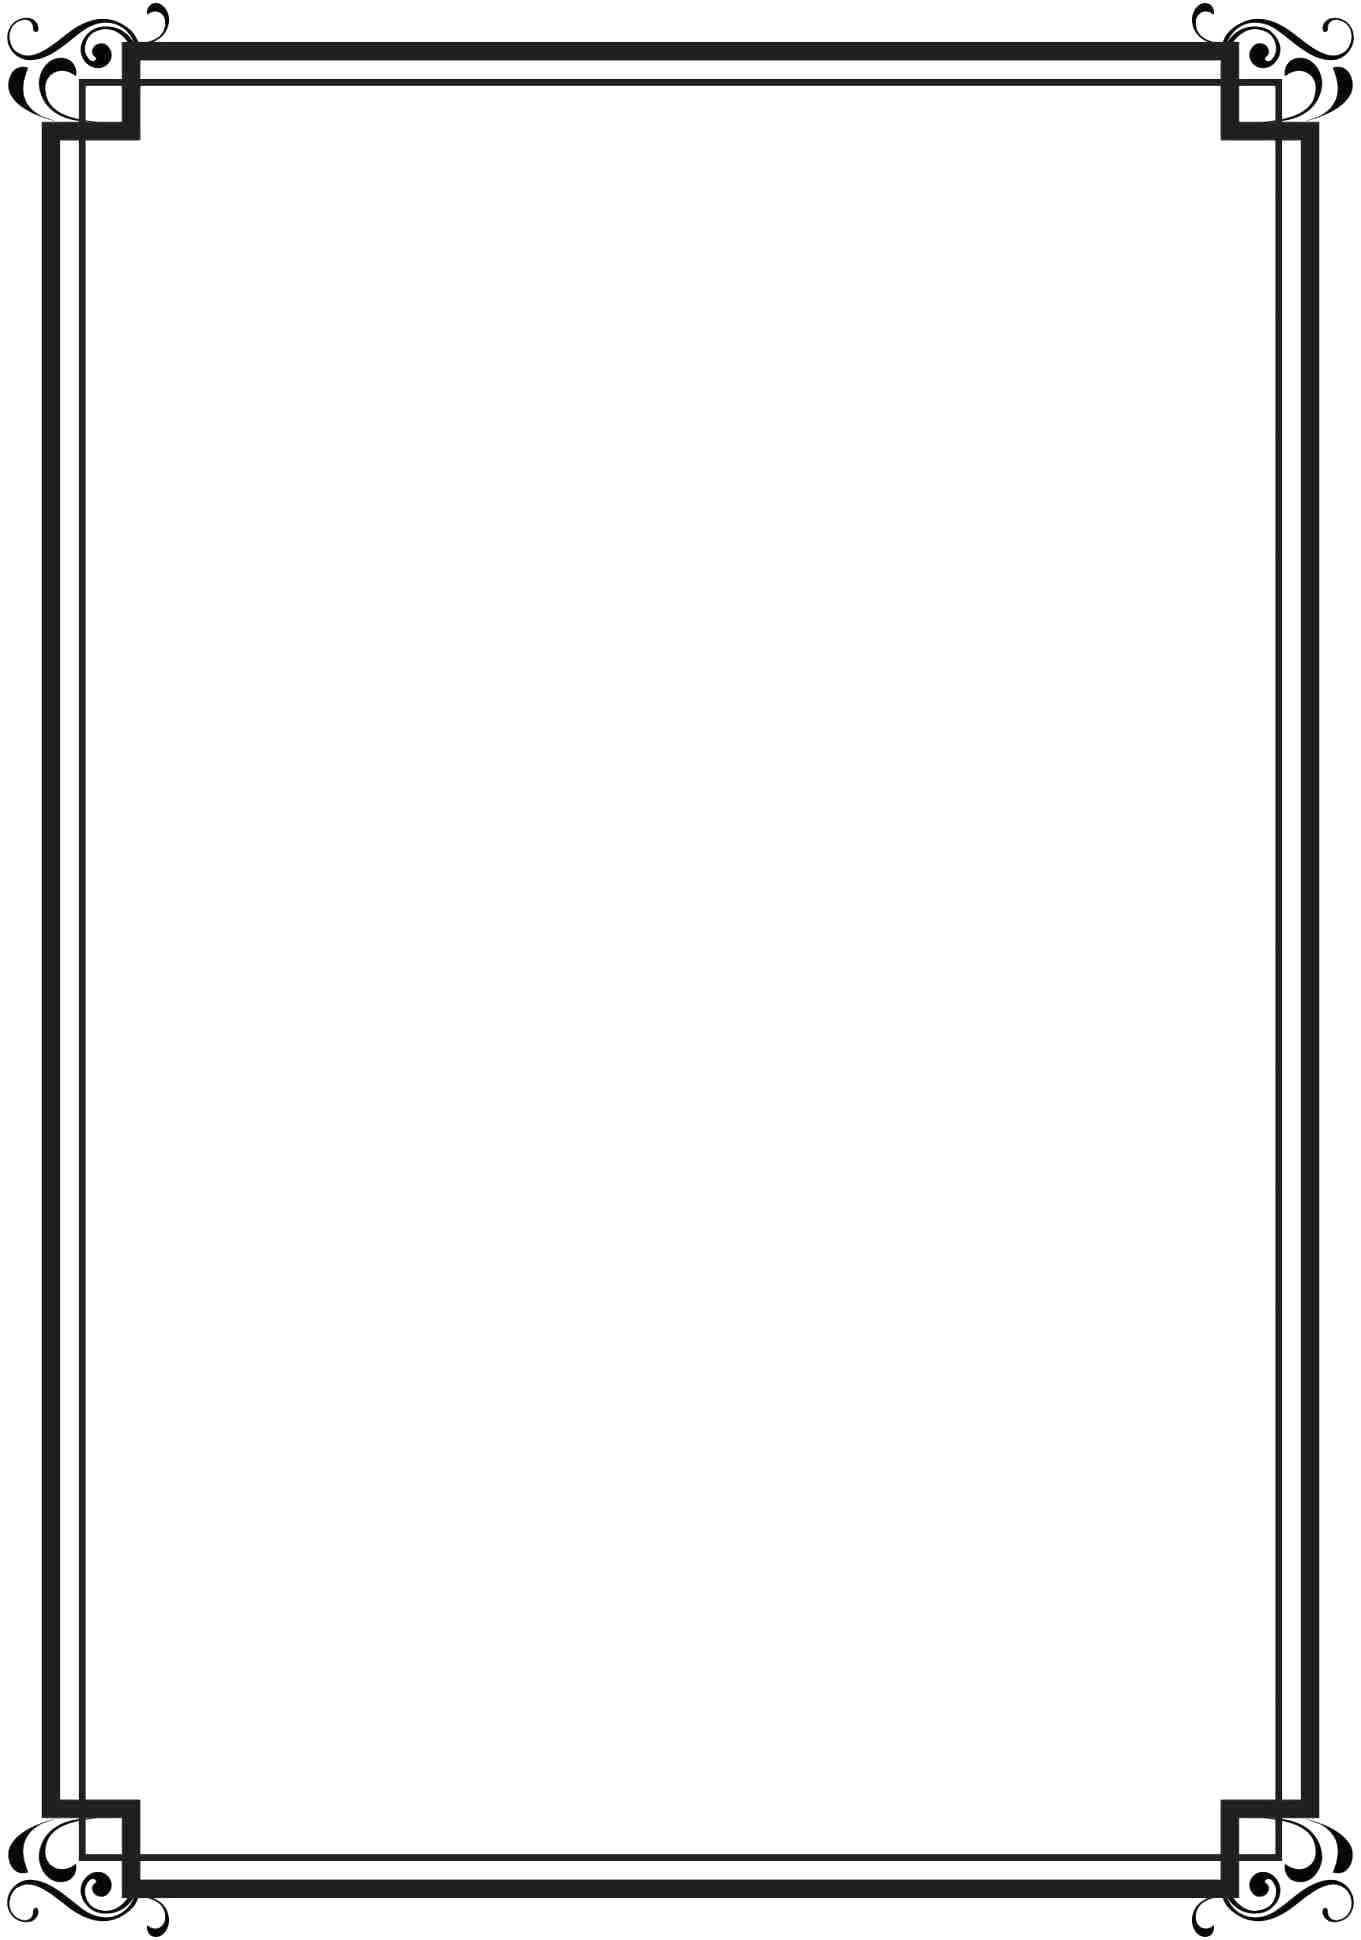 Template Certificate Border Design Template Black For Certificates Pertaining To Certificate Border Design Templates